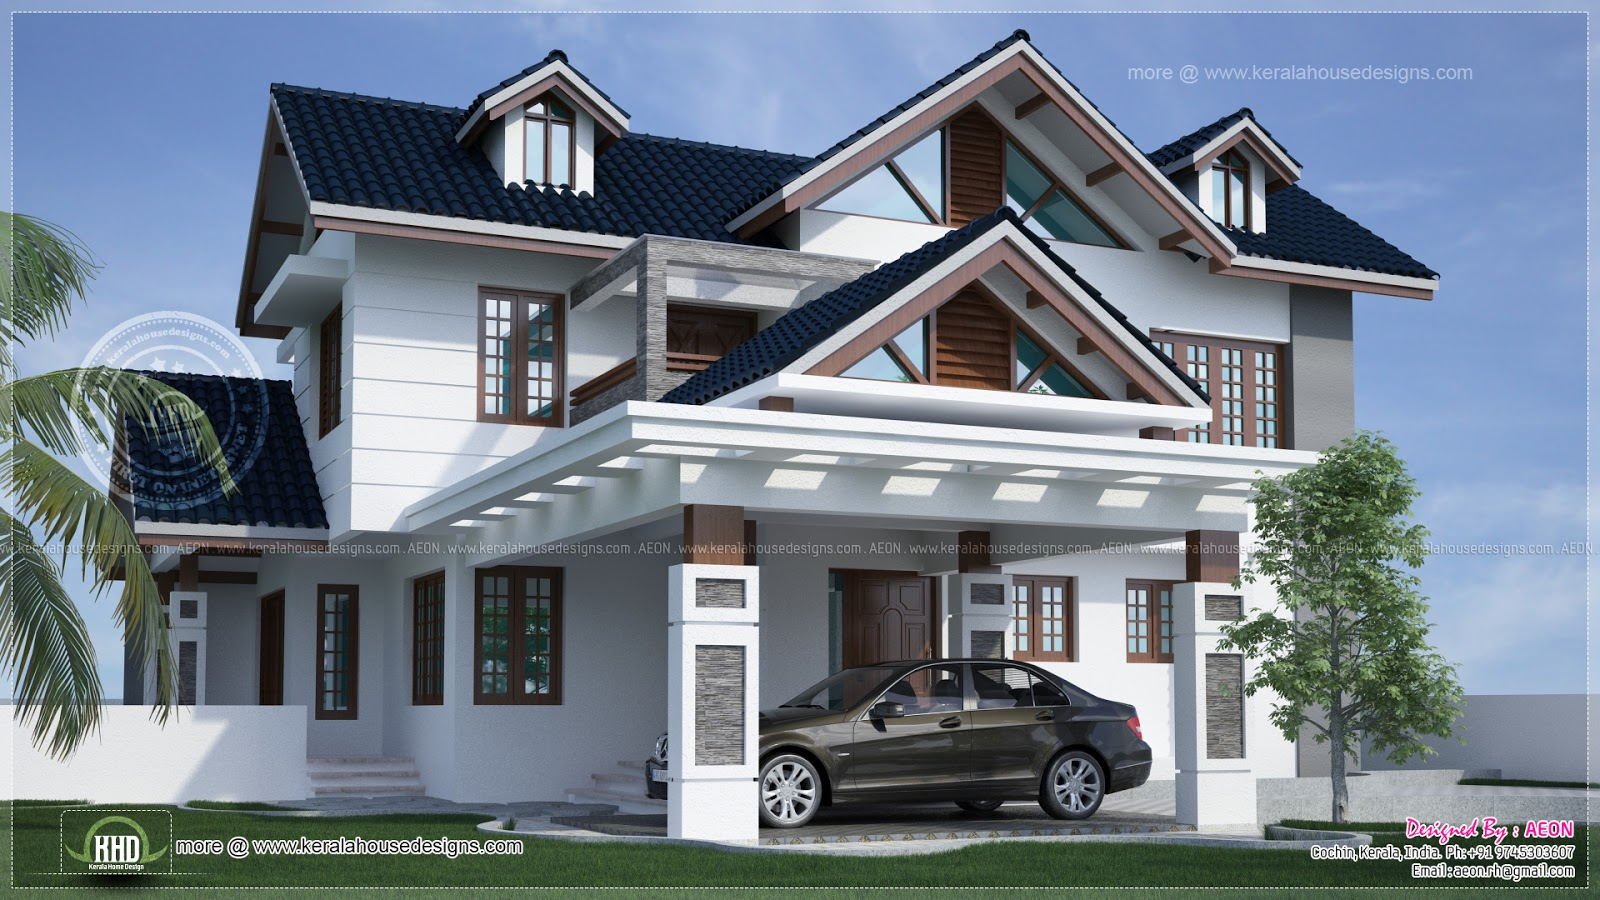 River side kerala style residence exterior design home kerala plans - Kerala exterior model homes ...